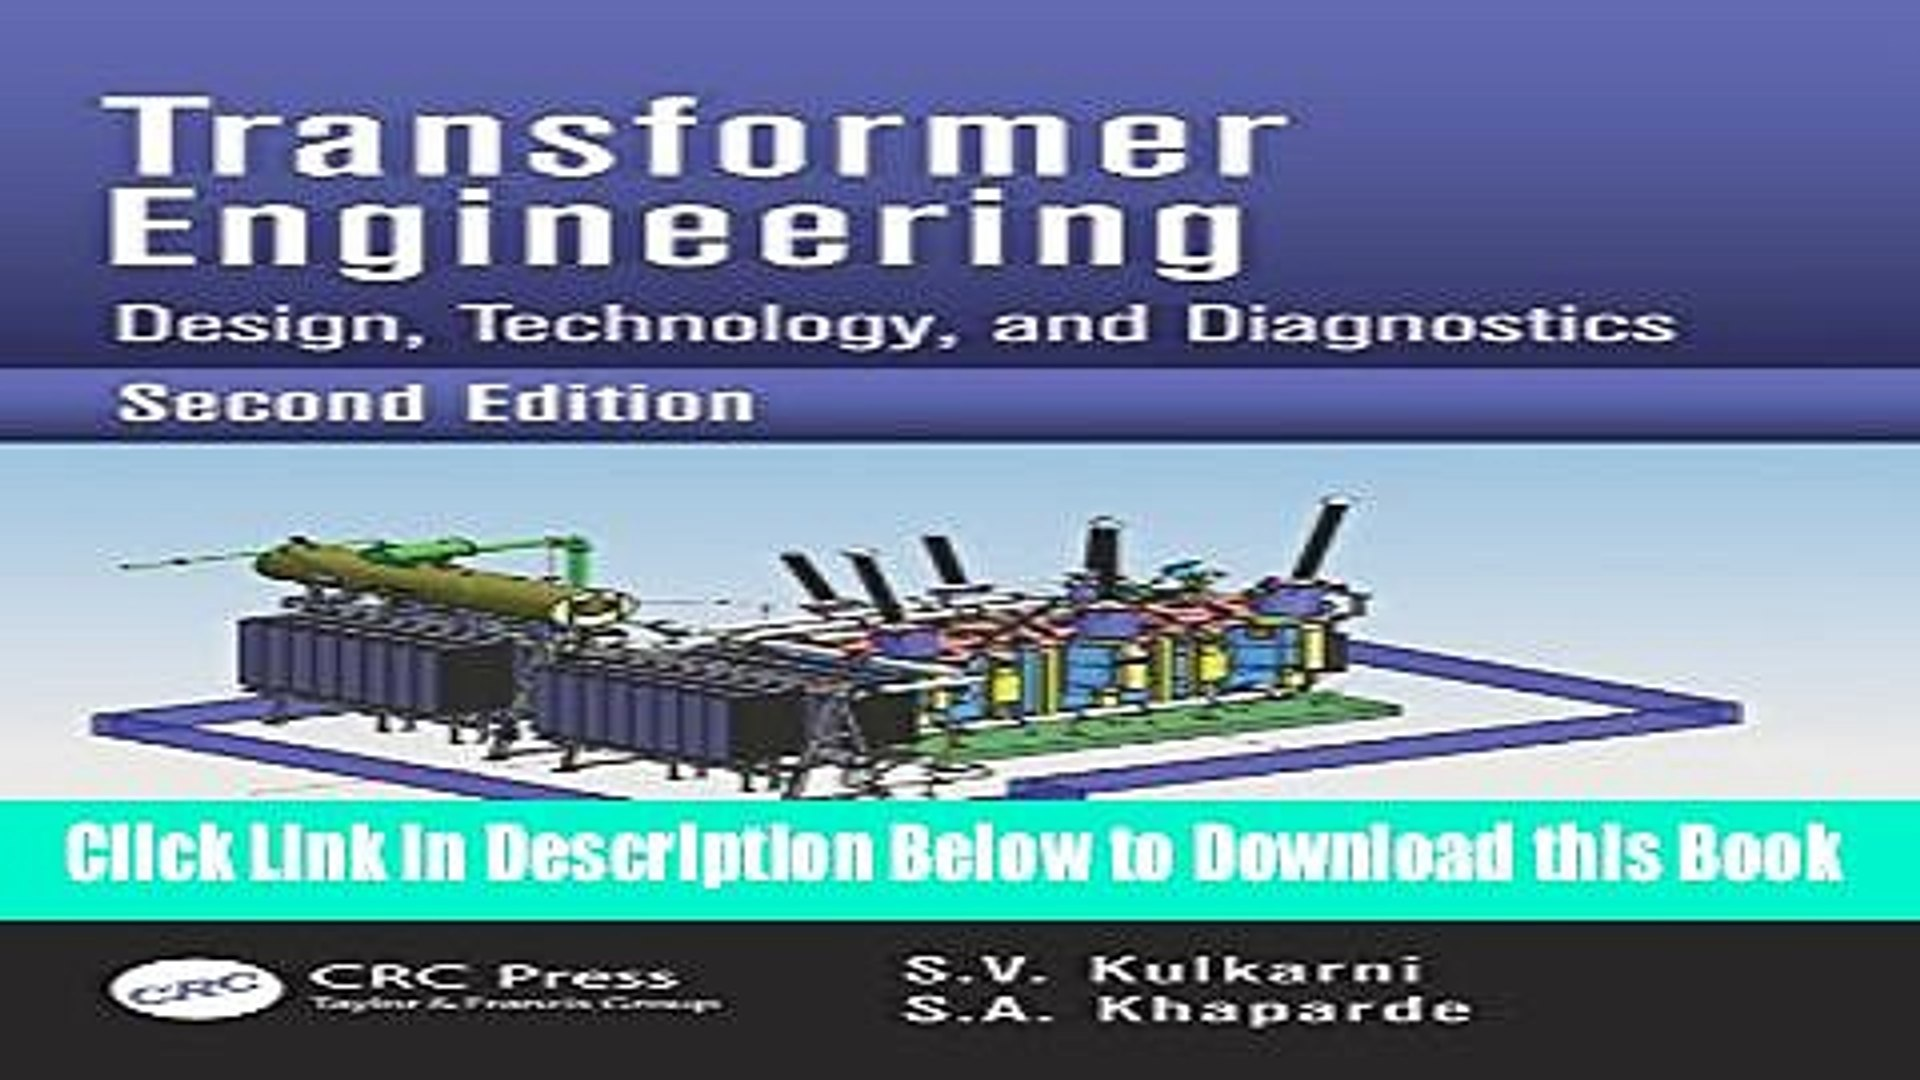 And Diagnostics Transformer Engineering Design Technology Second Edition Electromagnetics Computer Science